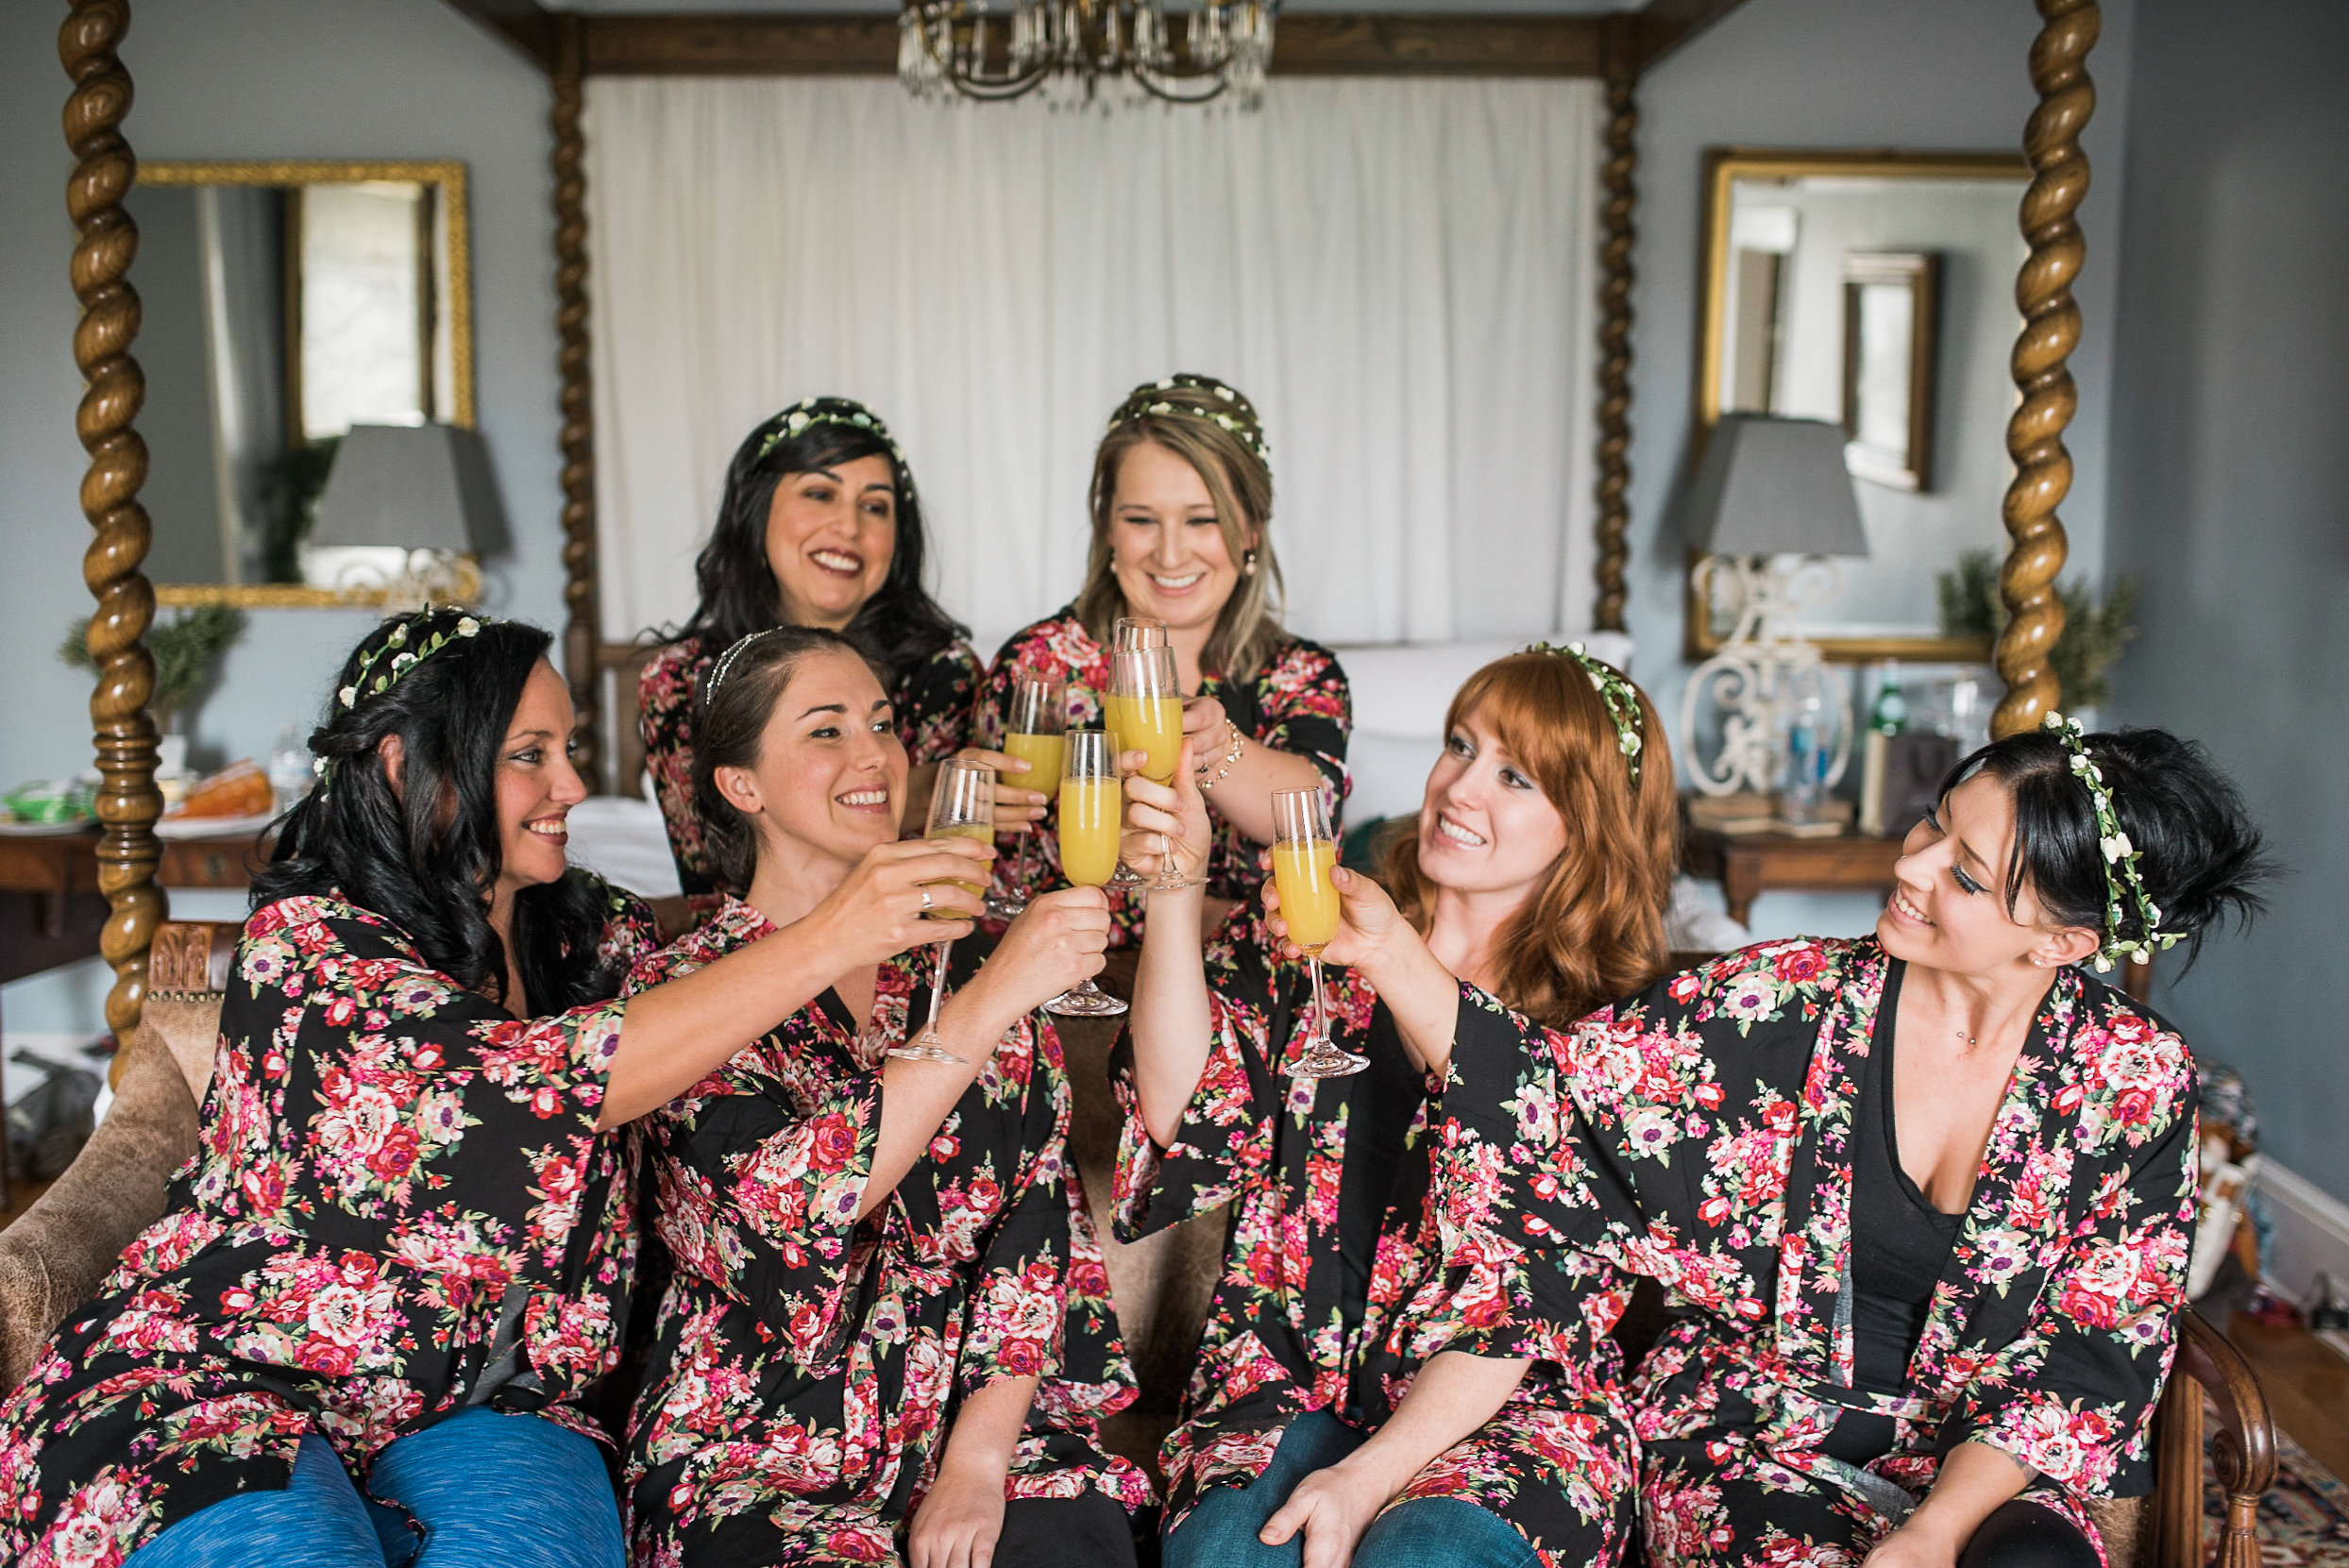 Bride and bridesmaids sharing drink